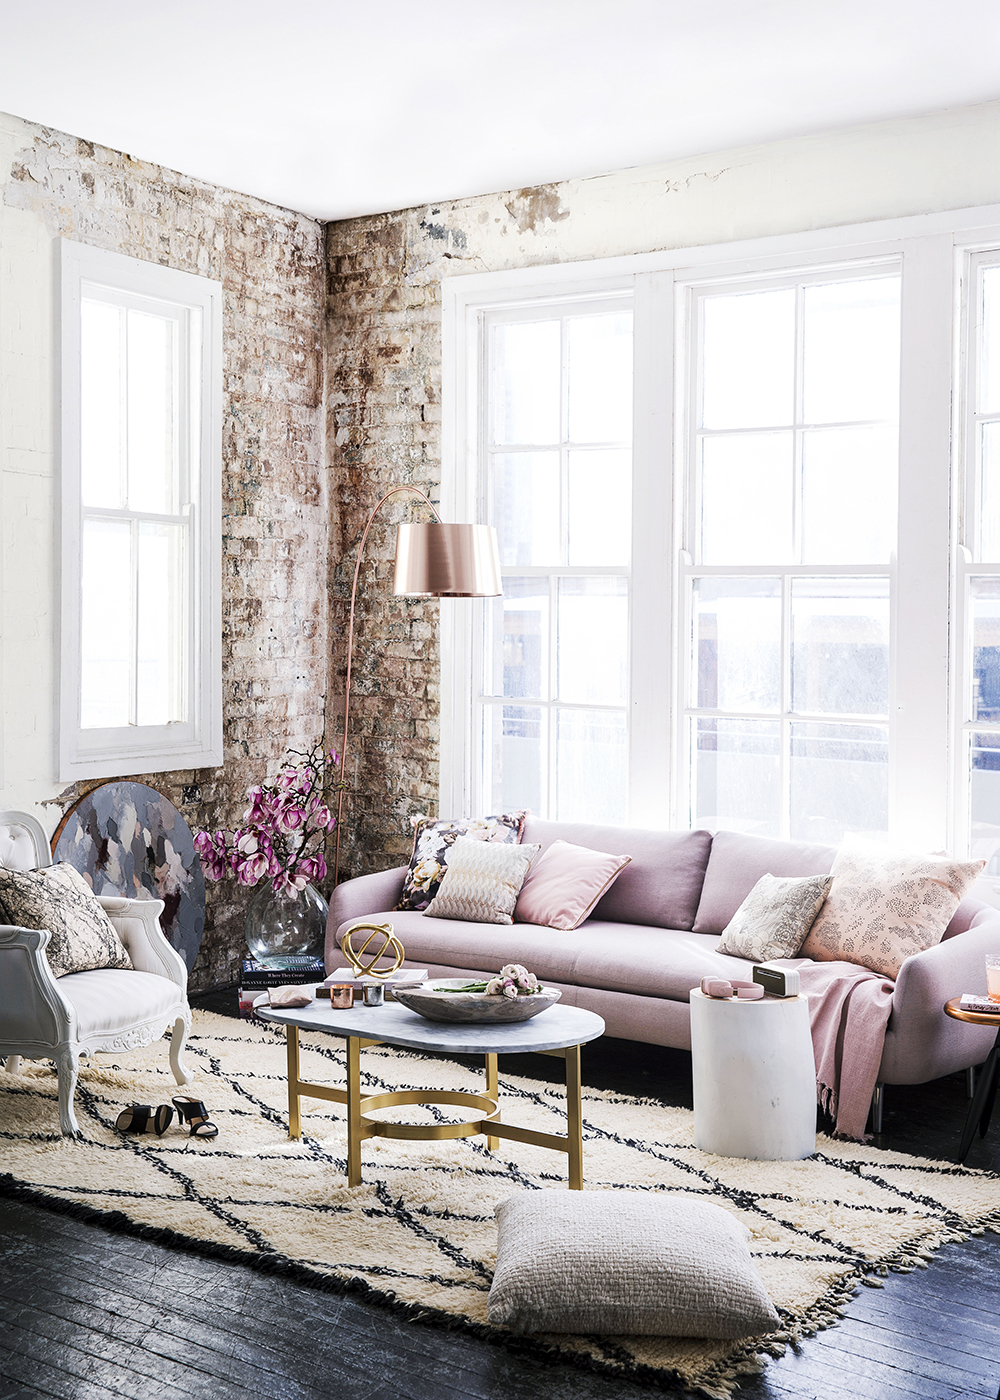 This living room is goals - Daily Dream Decor